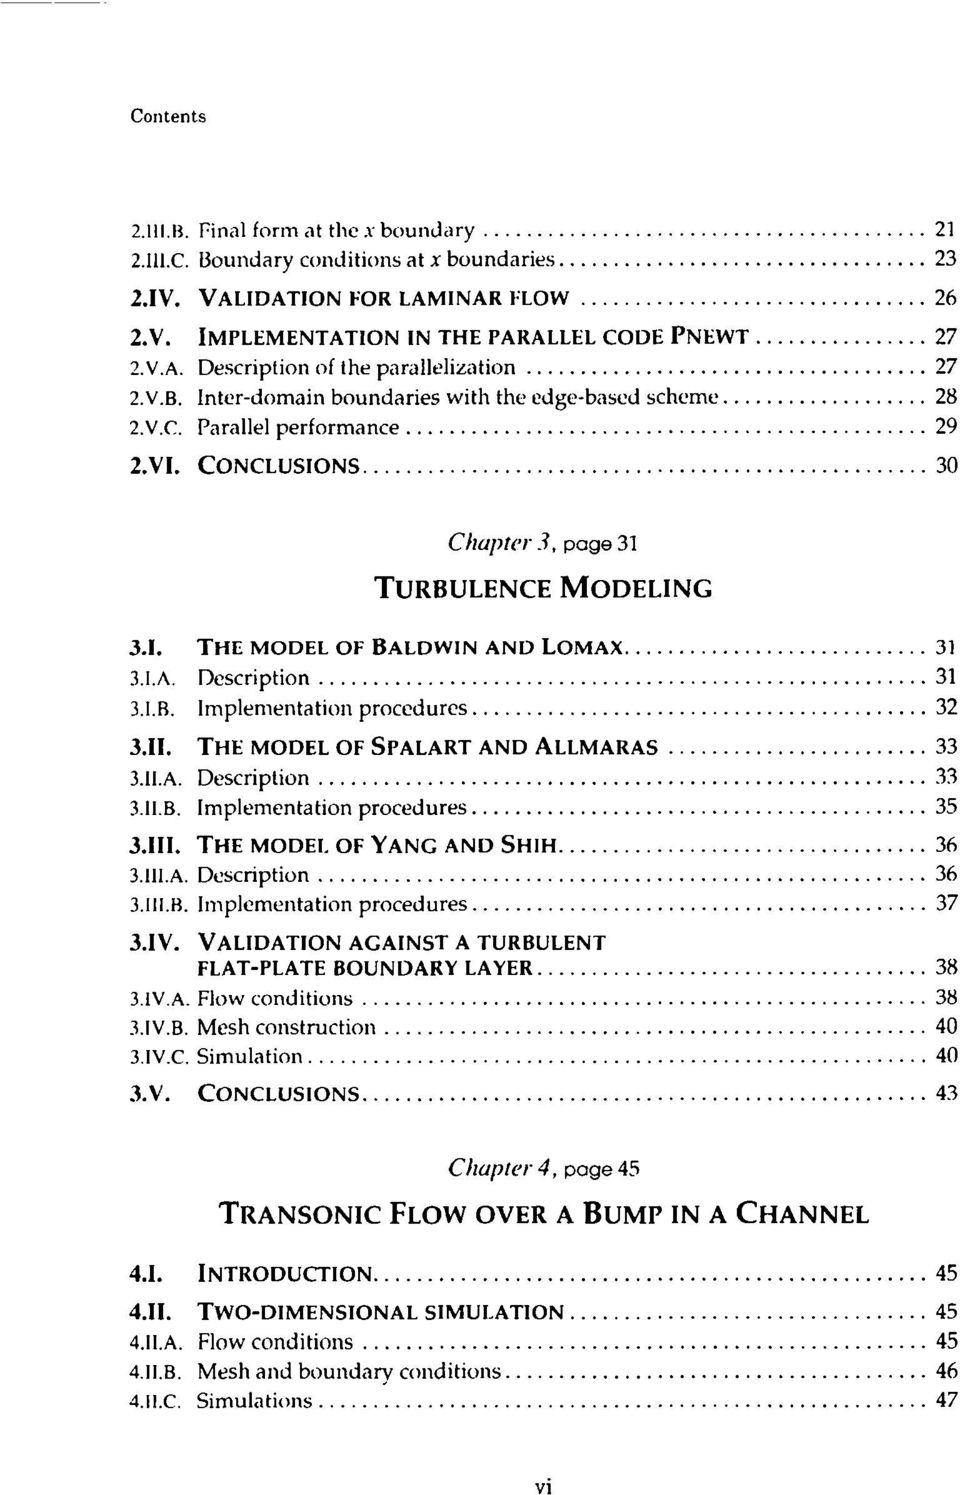 Chopter..3. page 31 TURBULENCE MODELING 3.1. THE MODEL OF BALDWIN AND LOMAX... 31 3.1.A. Description... 31 3.1.B. Implenientatioii proccdurcs... 32 3.11. THE MODEL OF SPALART AND ALLMARAS... 33 3.11.A. Description... 33 3.11.B. lmpiementation procedures.